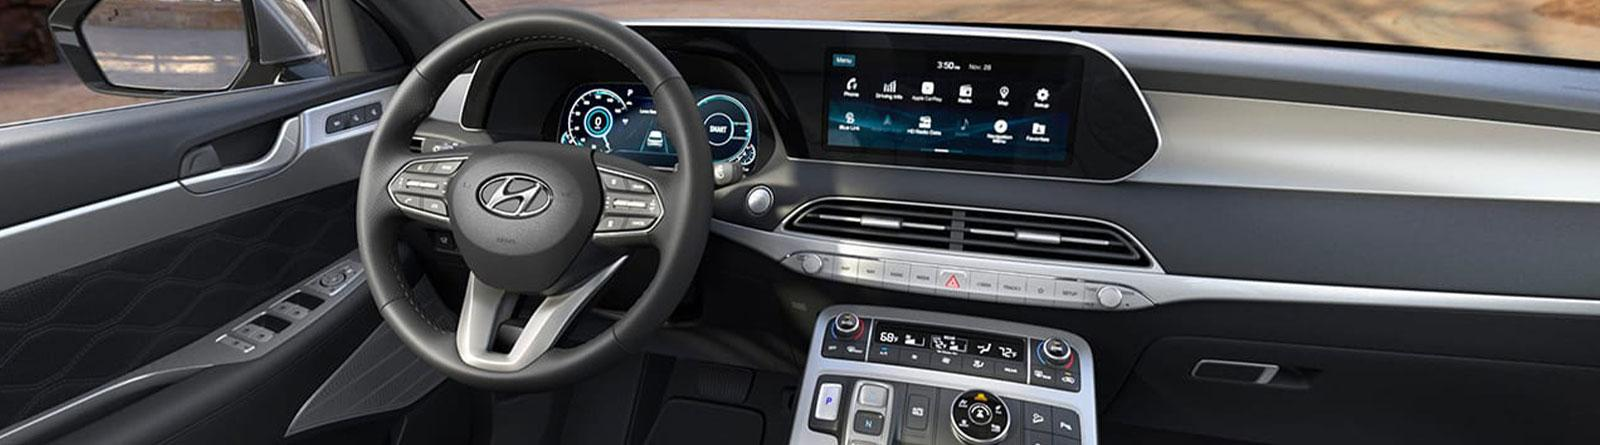 technology in dashboard and front console of 2020 Hyundai Palisade